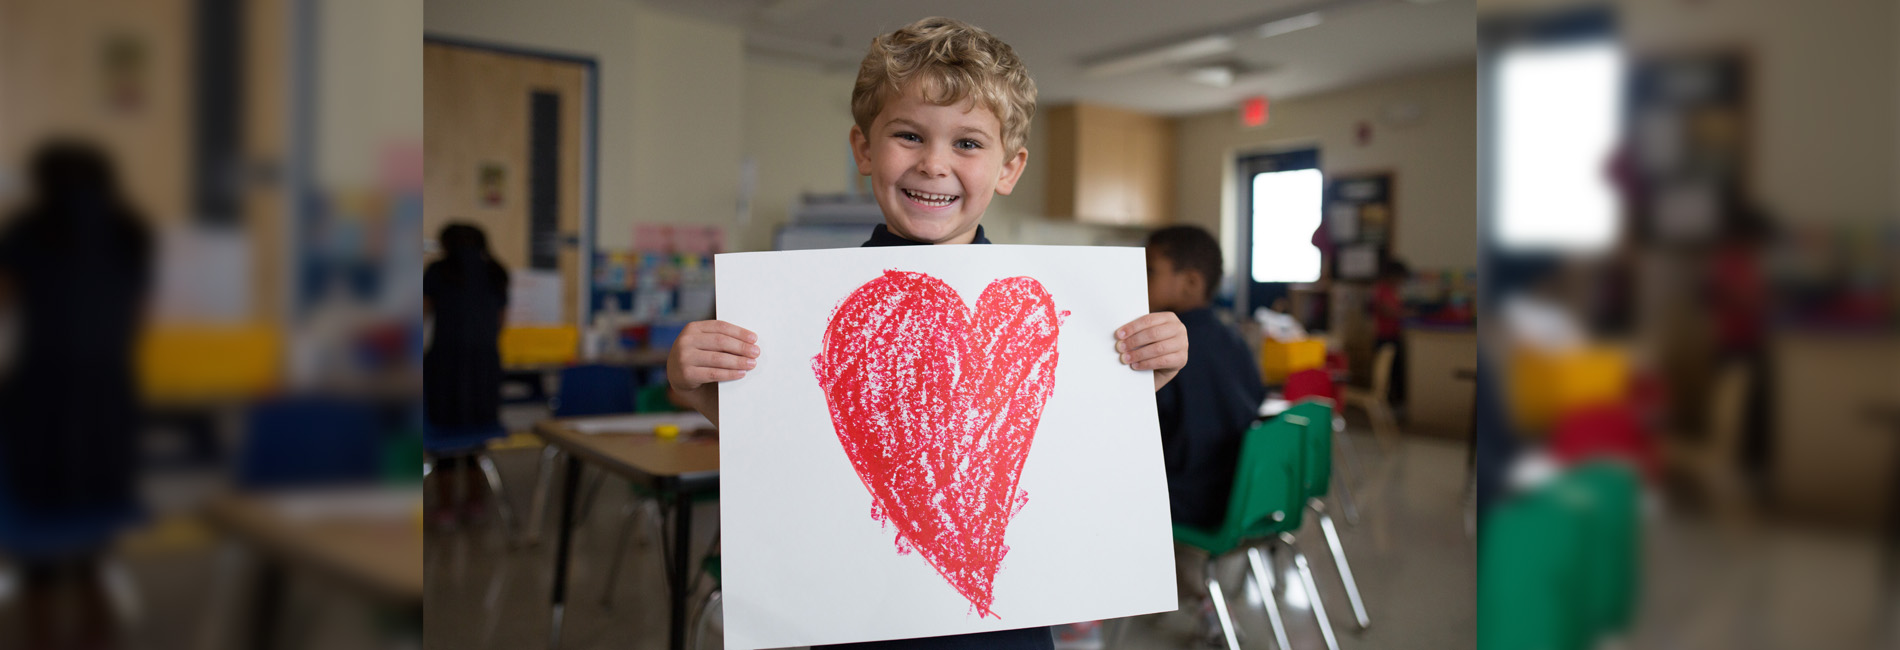 Boy holding up a drawing of a heart